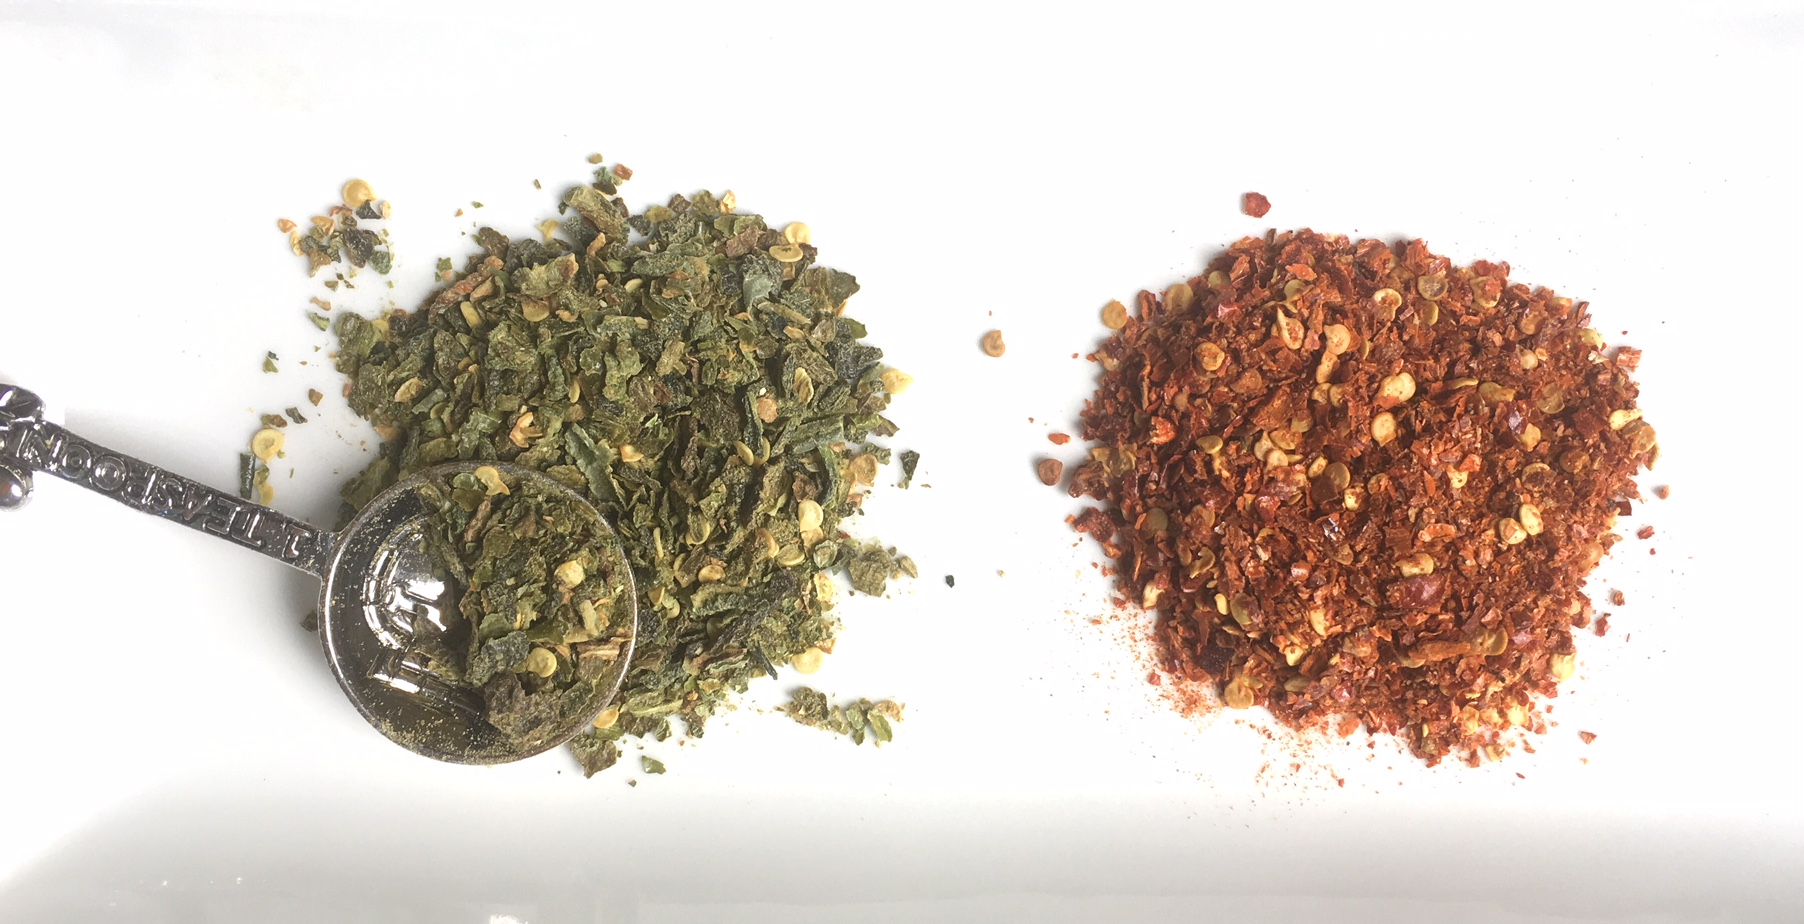 Green and red smoked pepper flakes each add unique flavors and color additions to spice up a meal. If you make a spicy batch, be careful when you open up your jars of pepper flakes because they can clear your sinuses! / 6 Creative Ways to Use Lots of Peppers by GrowJourney.com